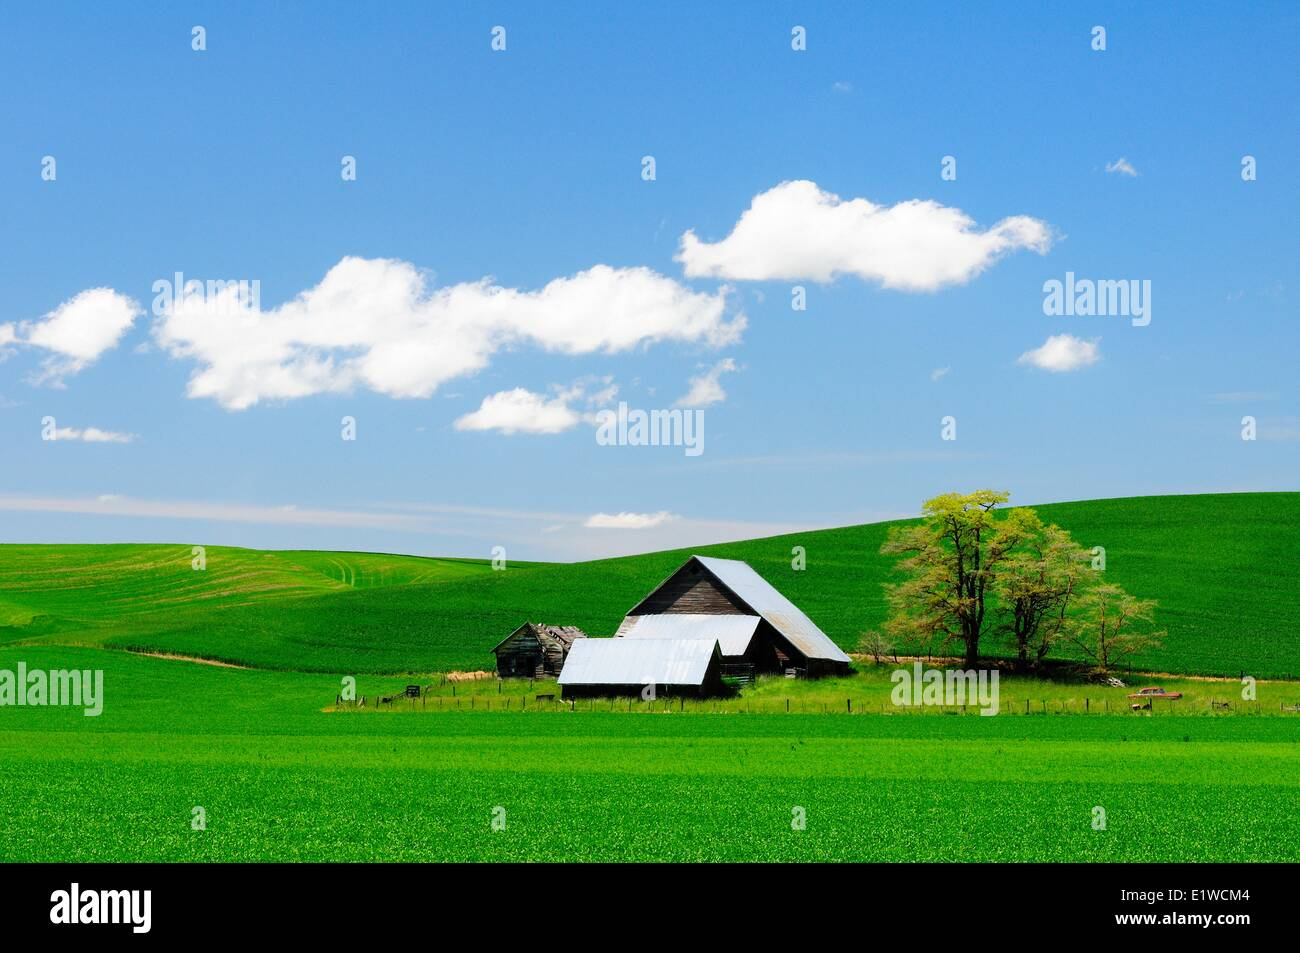 An old barn and farmland in the Palouse region of Washington State, USA. - Stock Image